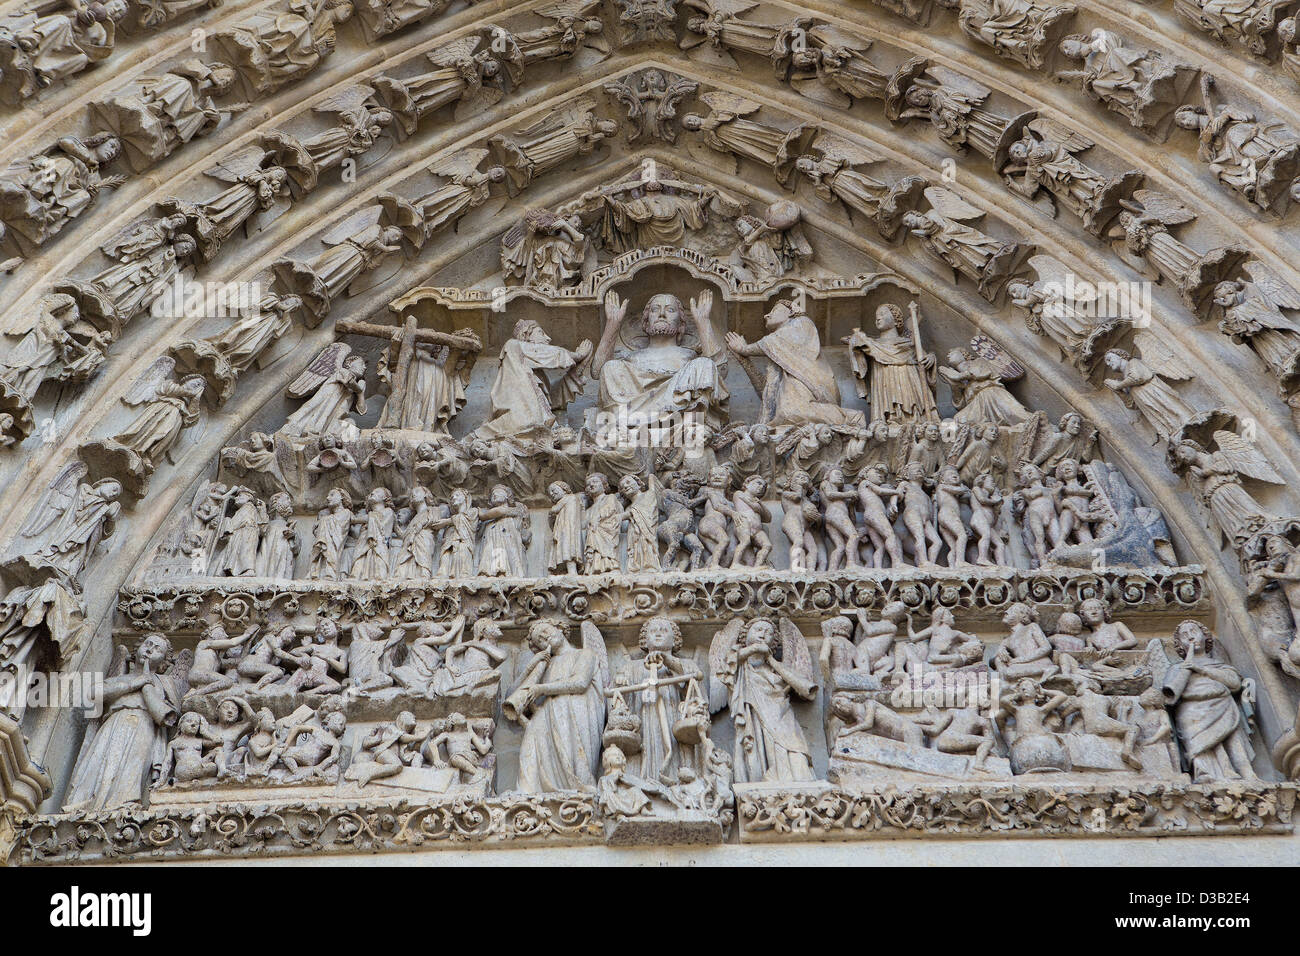 Tympanum of Cathedral of Our Lady of Amiens - Stock Image